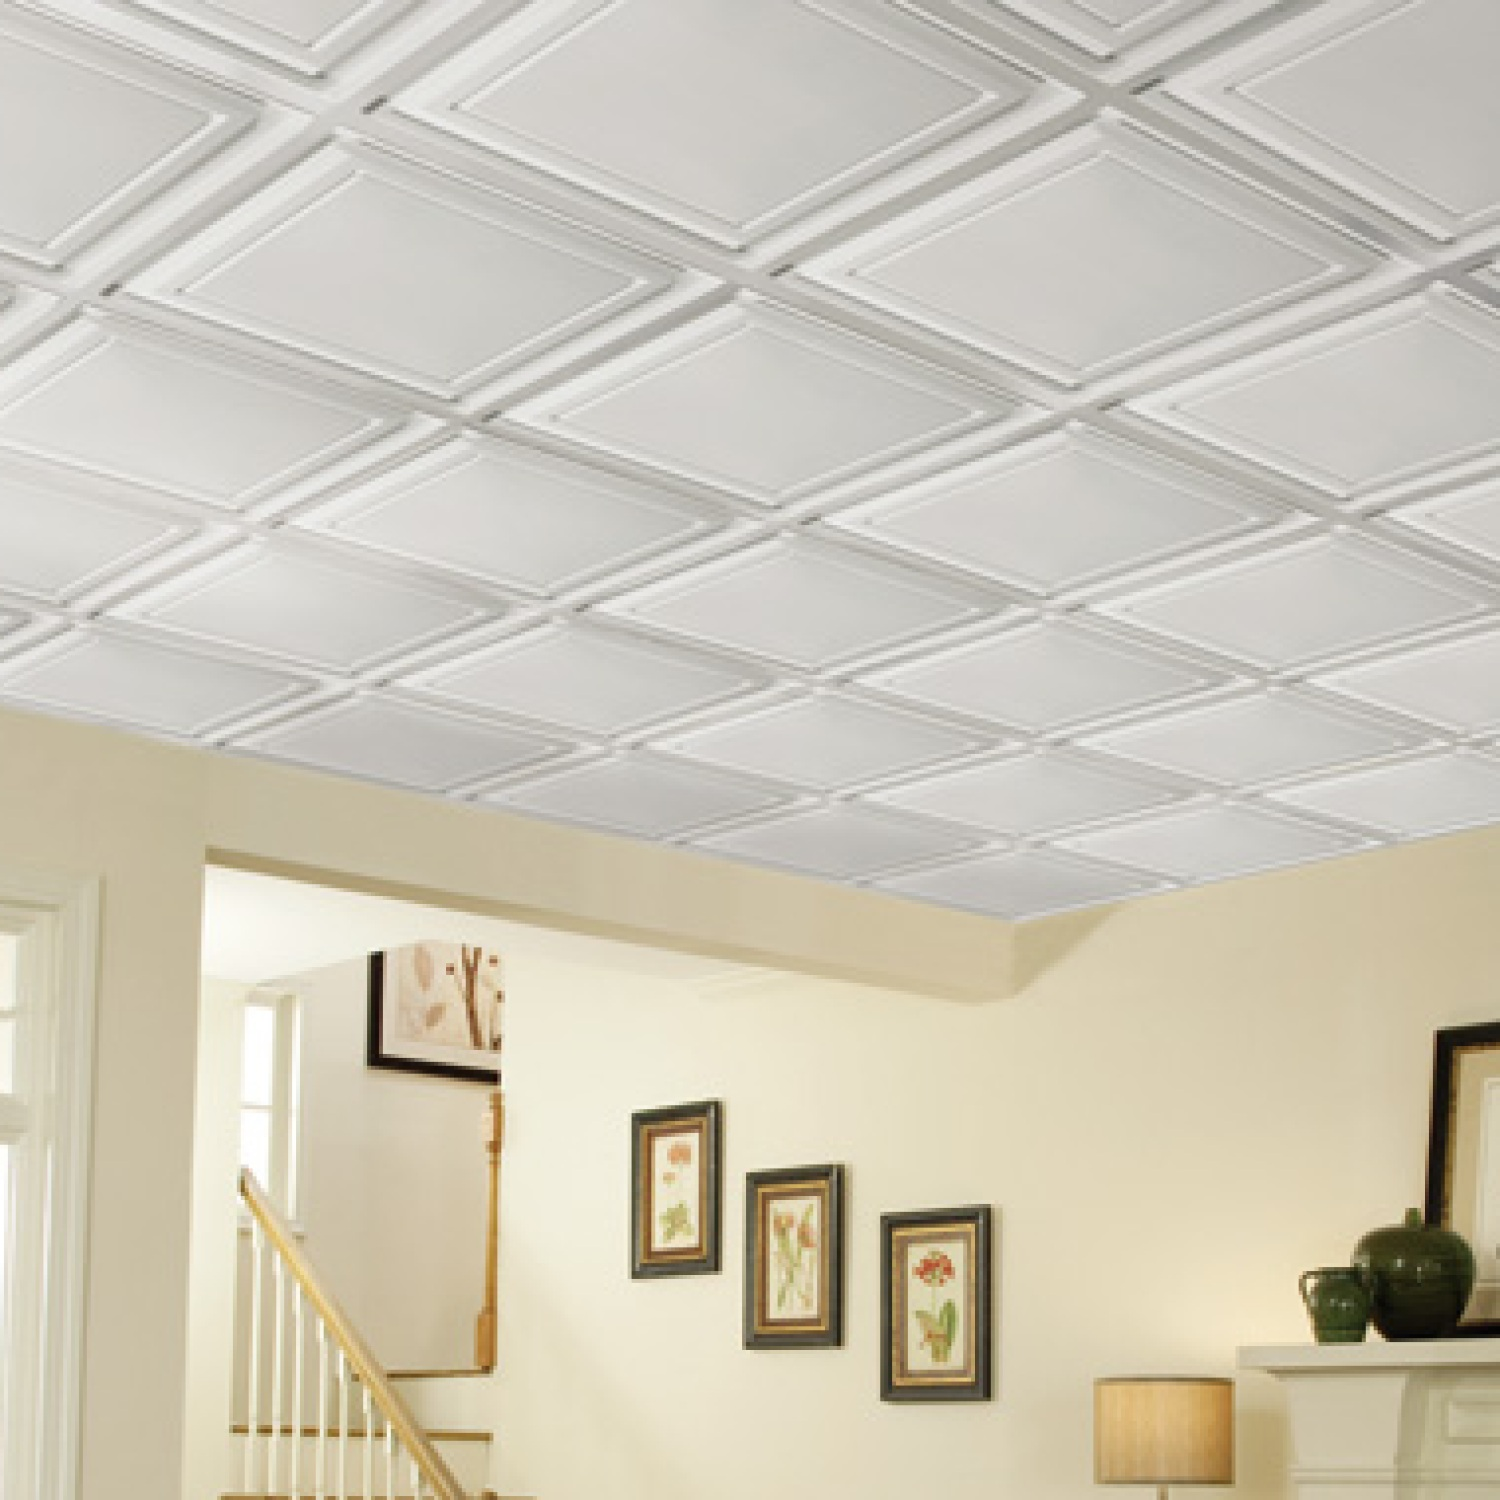 Basement Ceiling Ideas | Basement Ceiling Installation